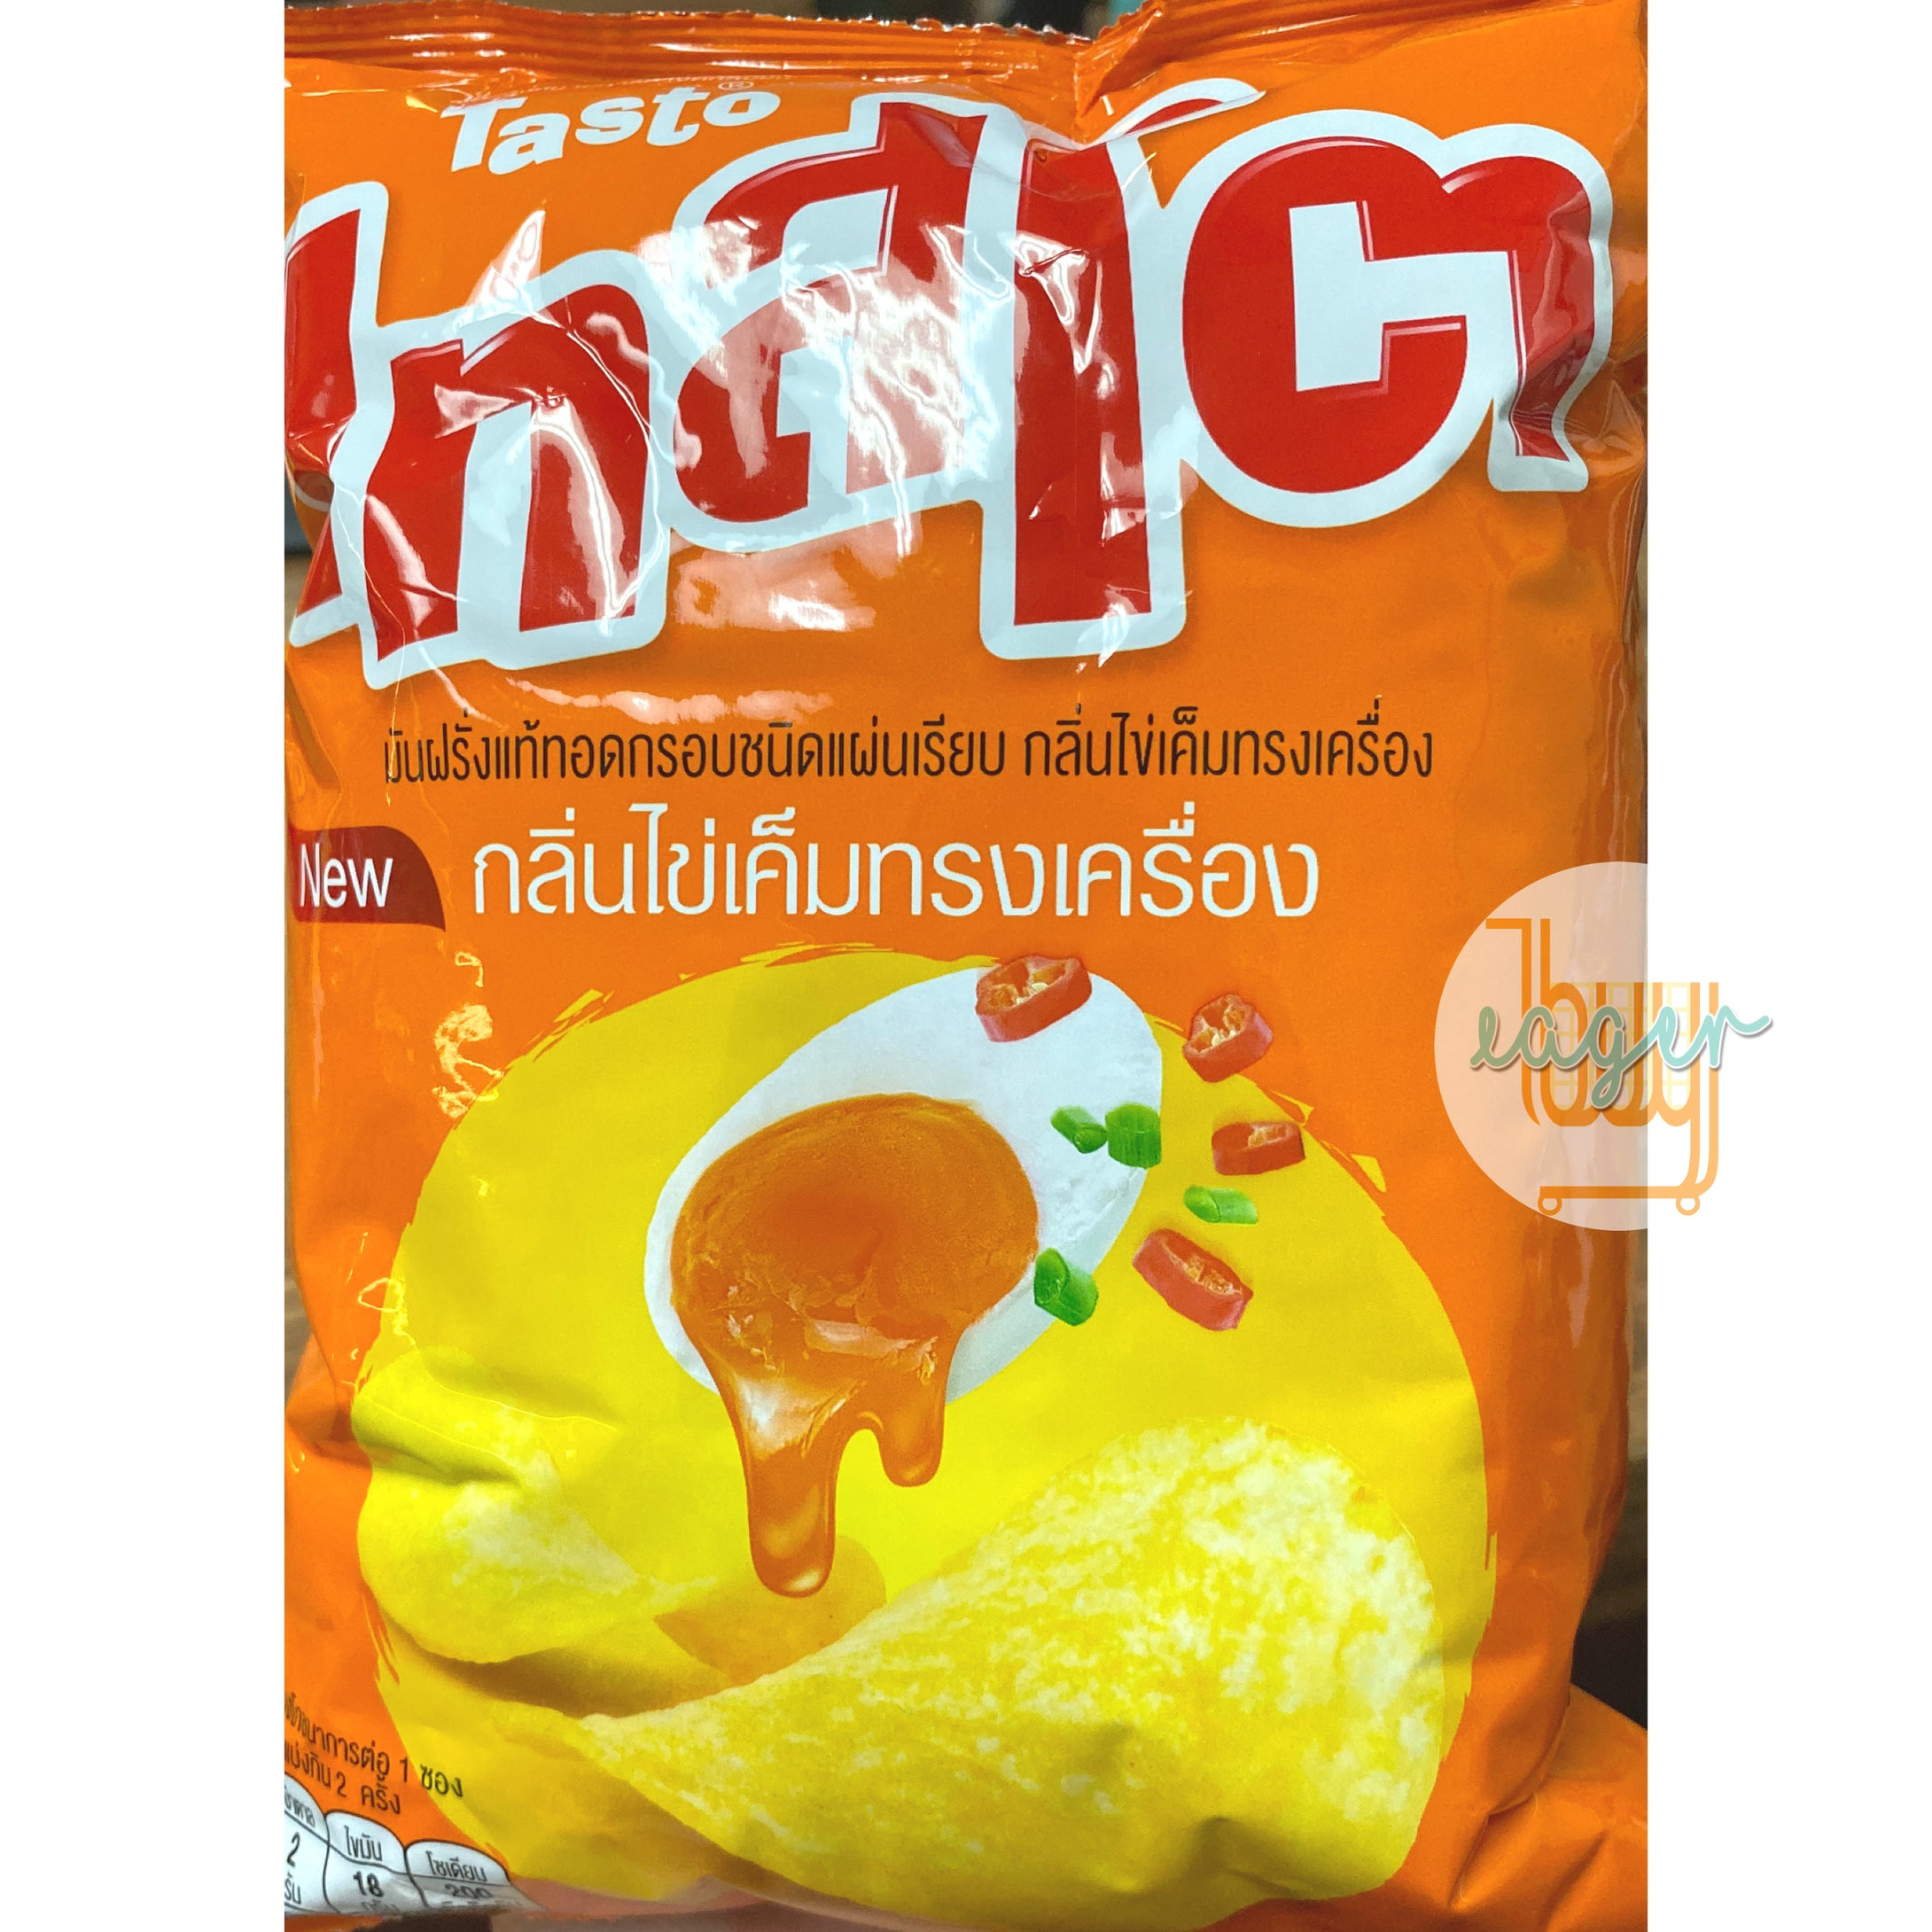 TASTO - Potato Chips - Seasoned Salty Egg Flavor (Flat Cut)